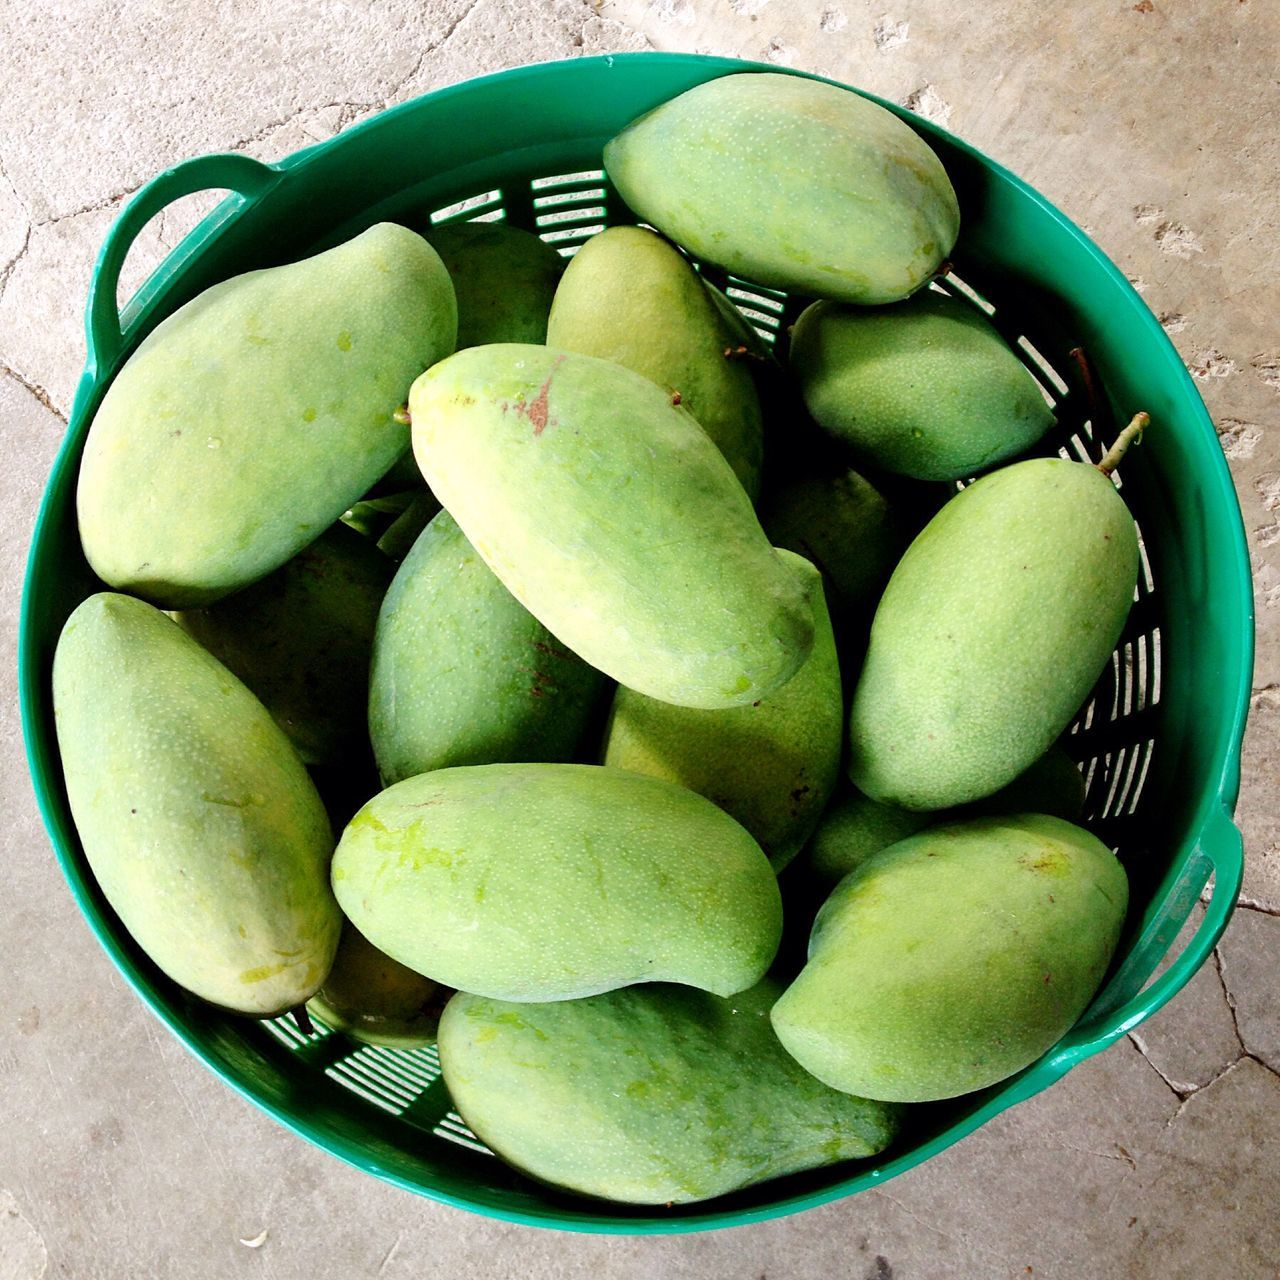 Mango Mango In Bucket form my backyard, lopuri, thailand.